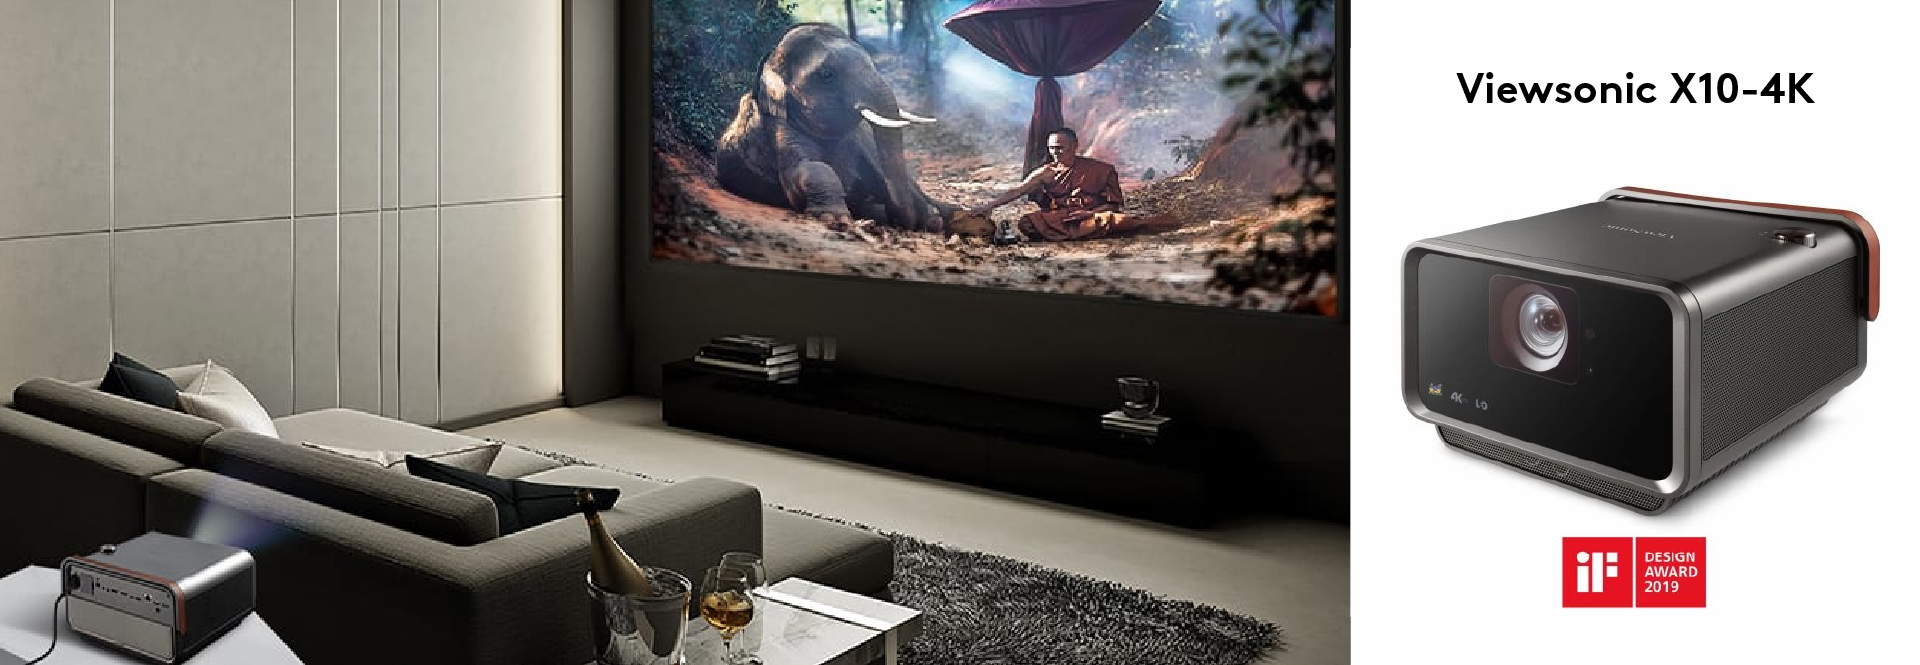 Projectors from Viewsonic like the X10-4K that provide stunning clarity, color, and throw angles and distances for any type of setup - Home or Corporate use   Kaira Global